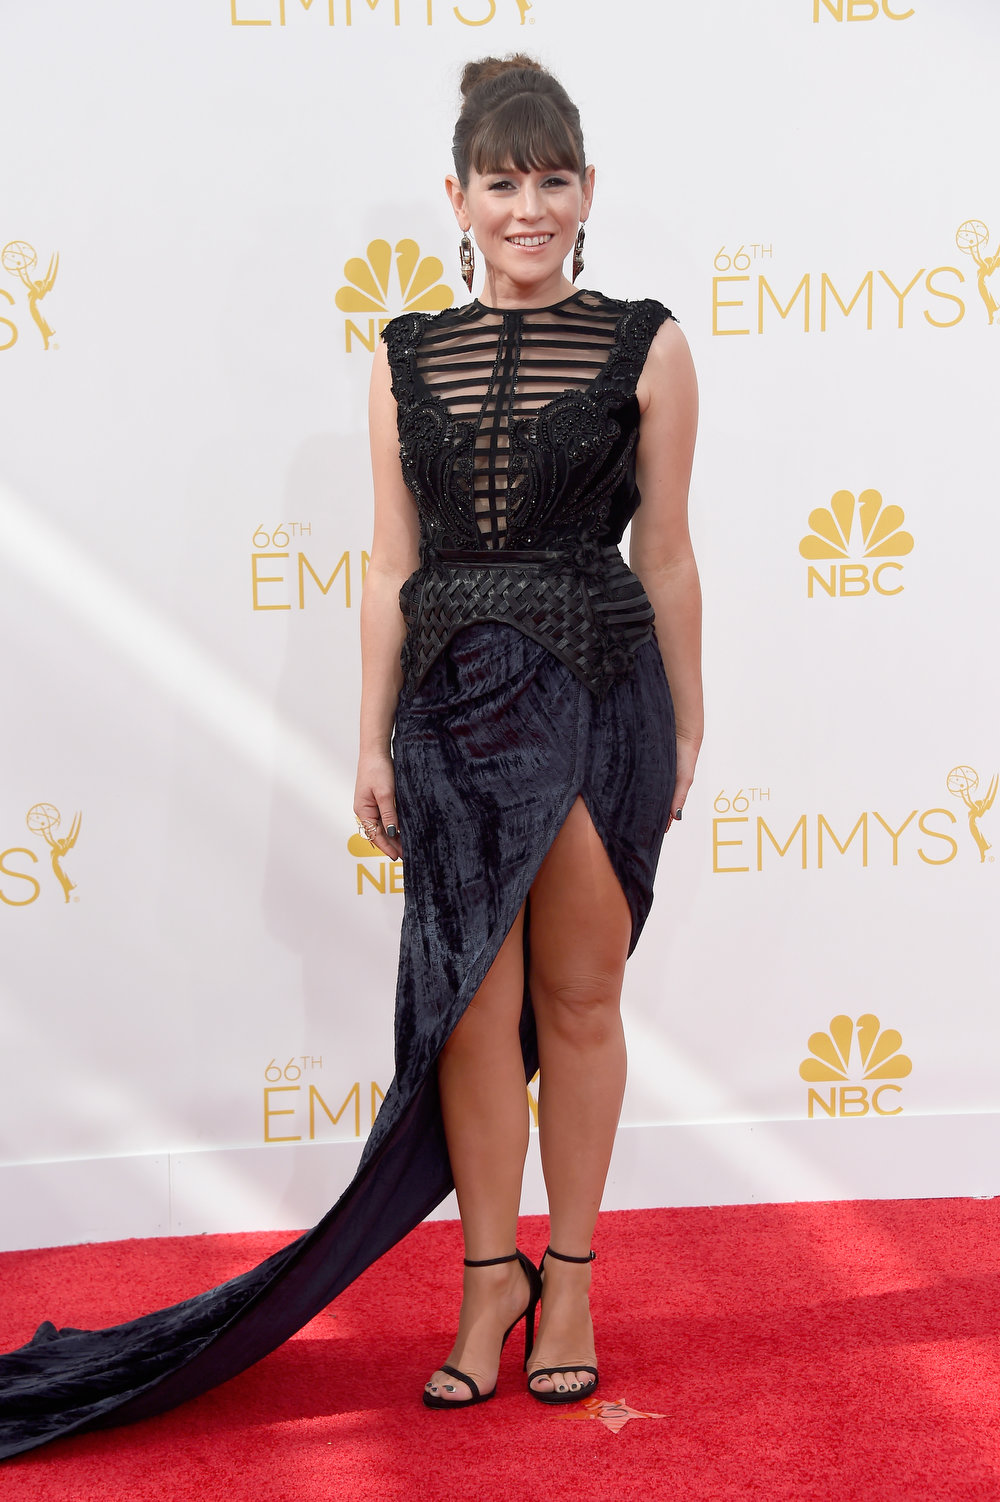 . Actress Yael Stone attends the 66th Annual Primetime Emmy Awards held at Nokia Theatre L.A. Live on August 25, 2014 in Los Angeles, California.  (Photo by Frazer Harrison/Getty Images)